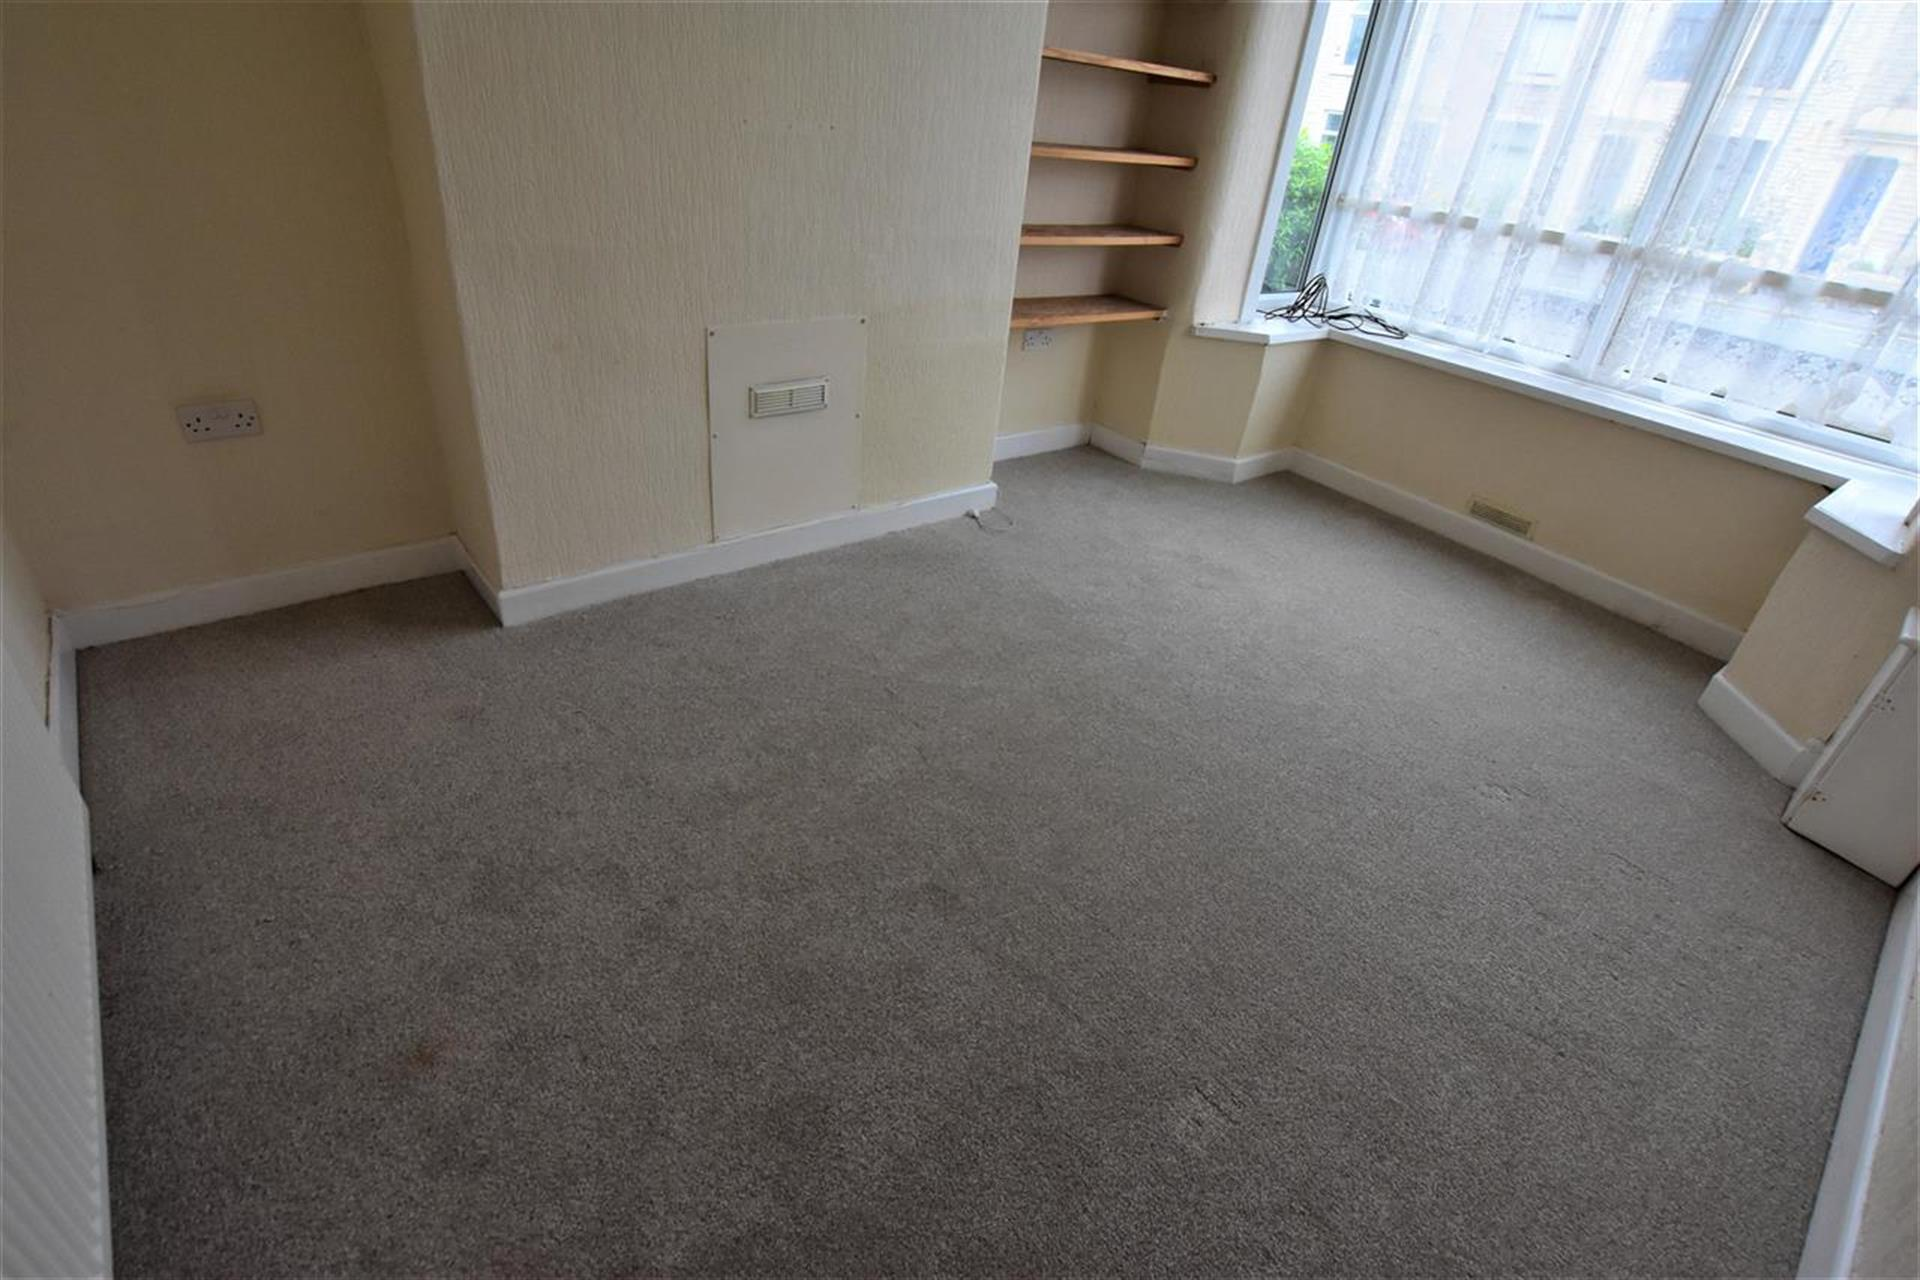 2 Bedroom Terraced House For Sale - Reception Room 1